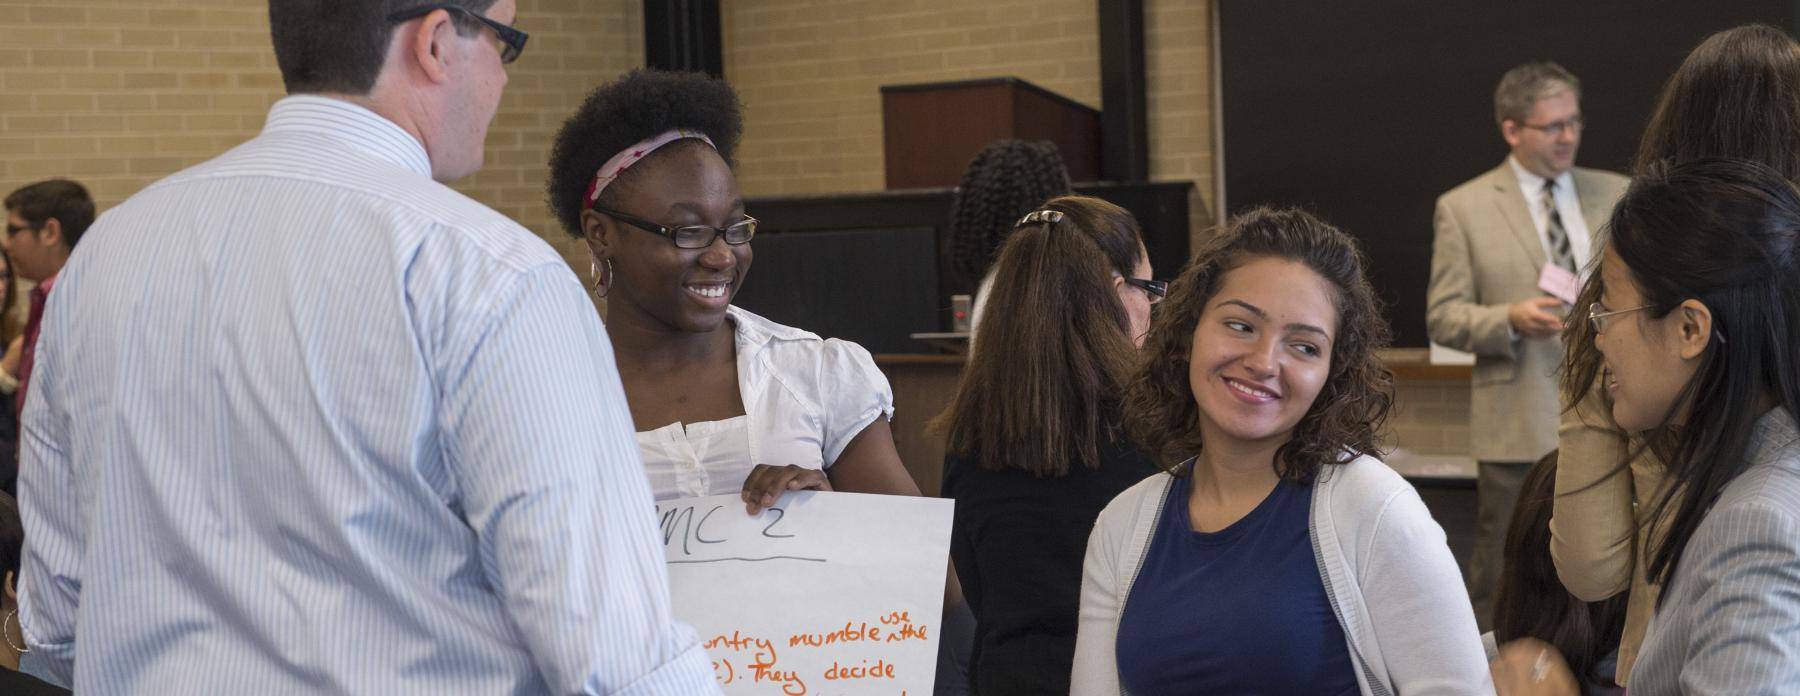 UTEP students talk to one another at an event